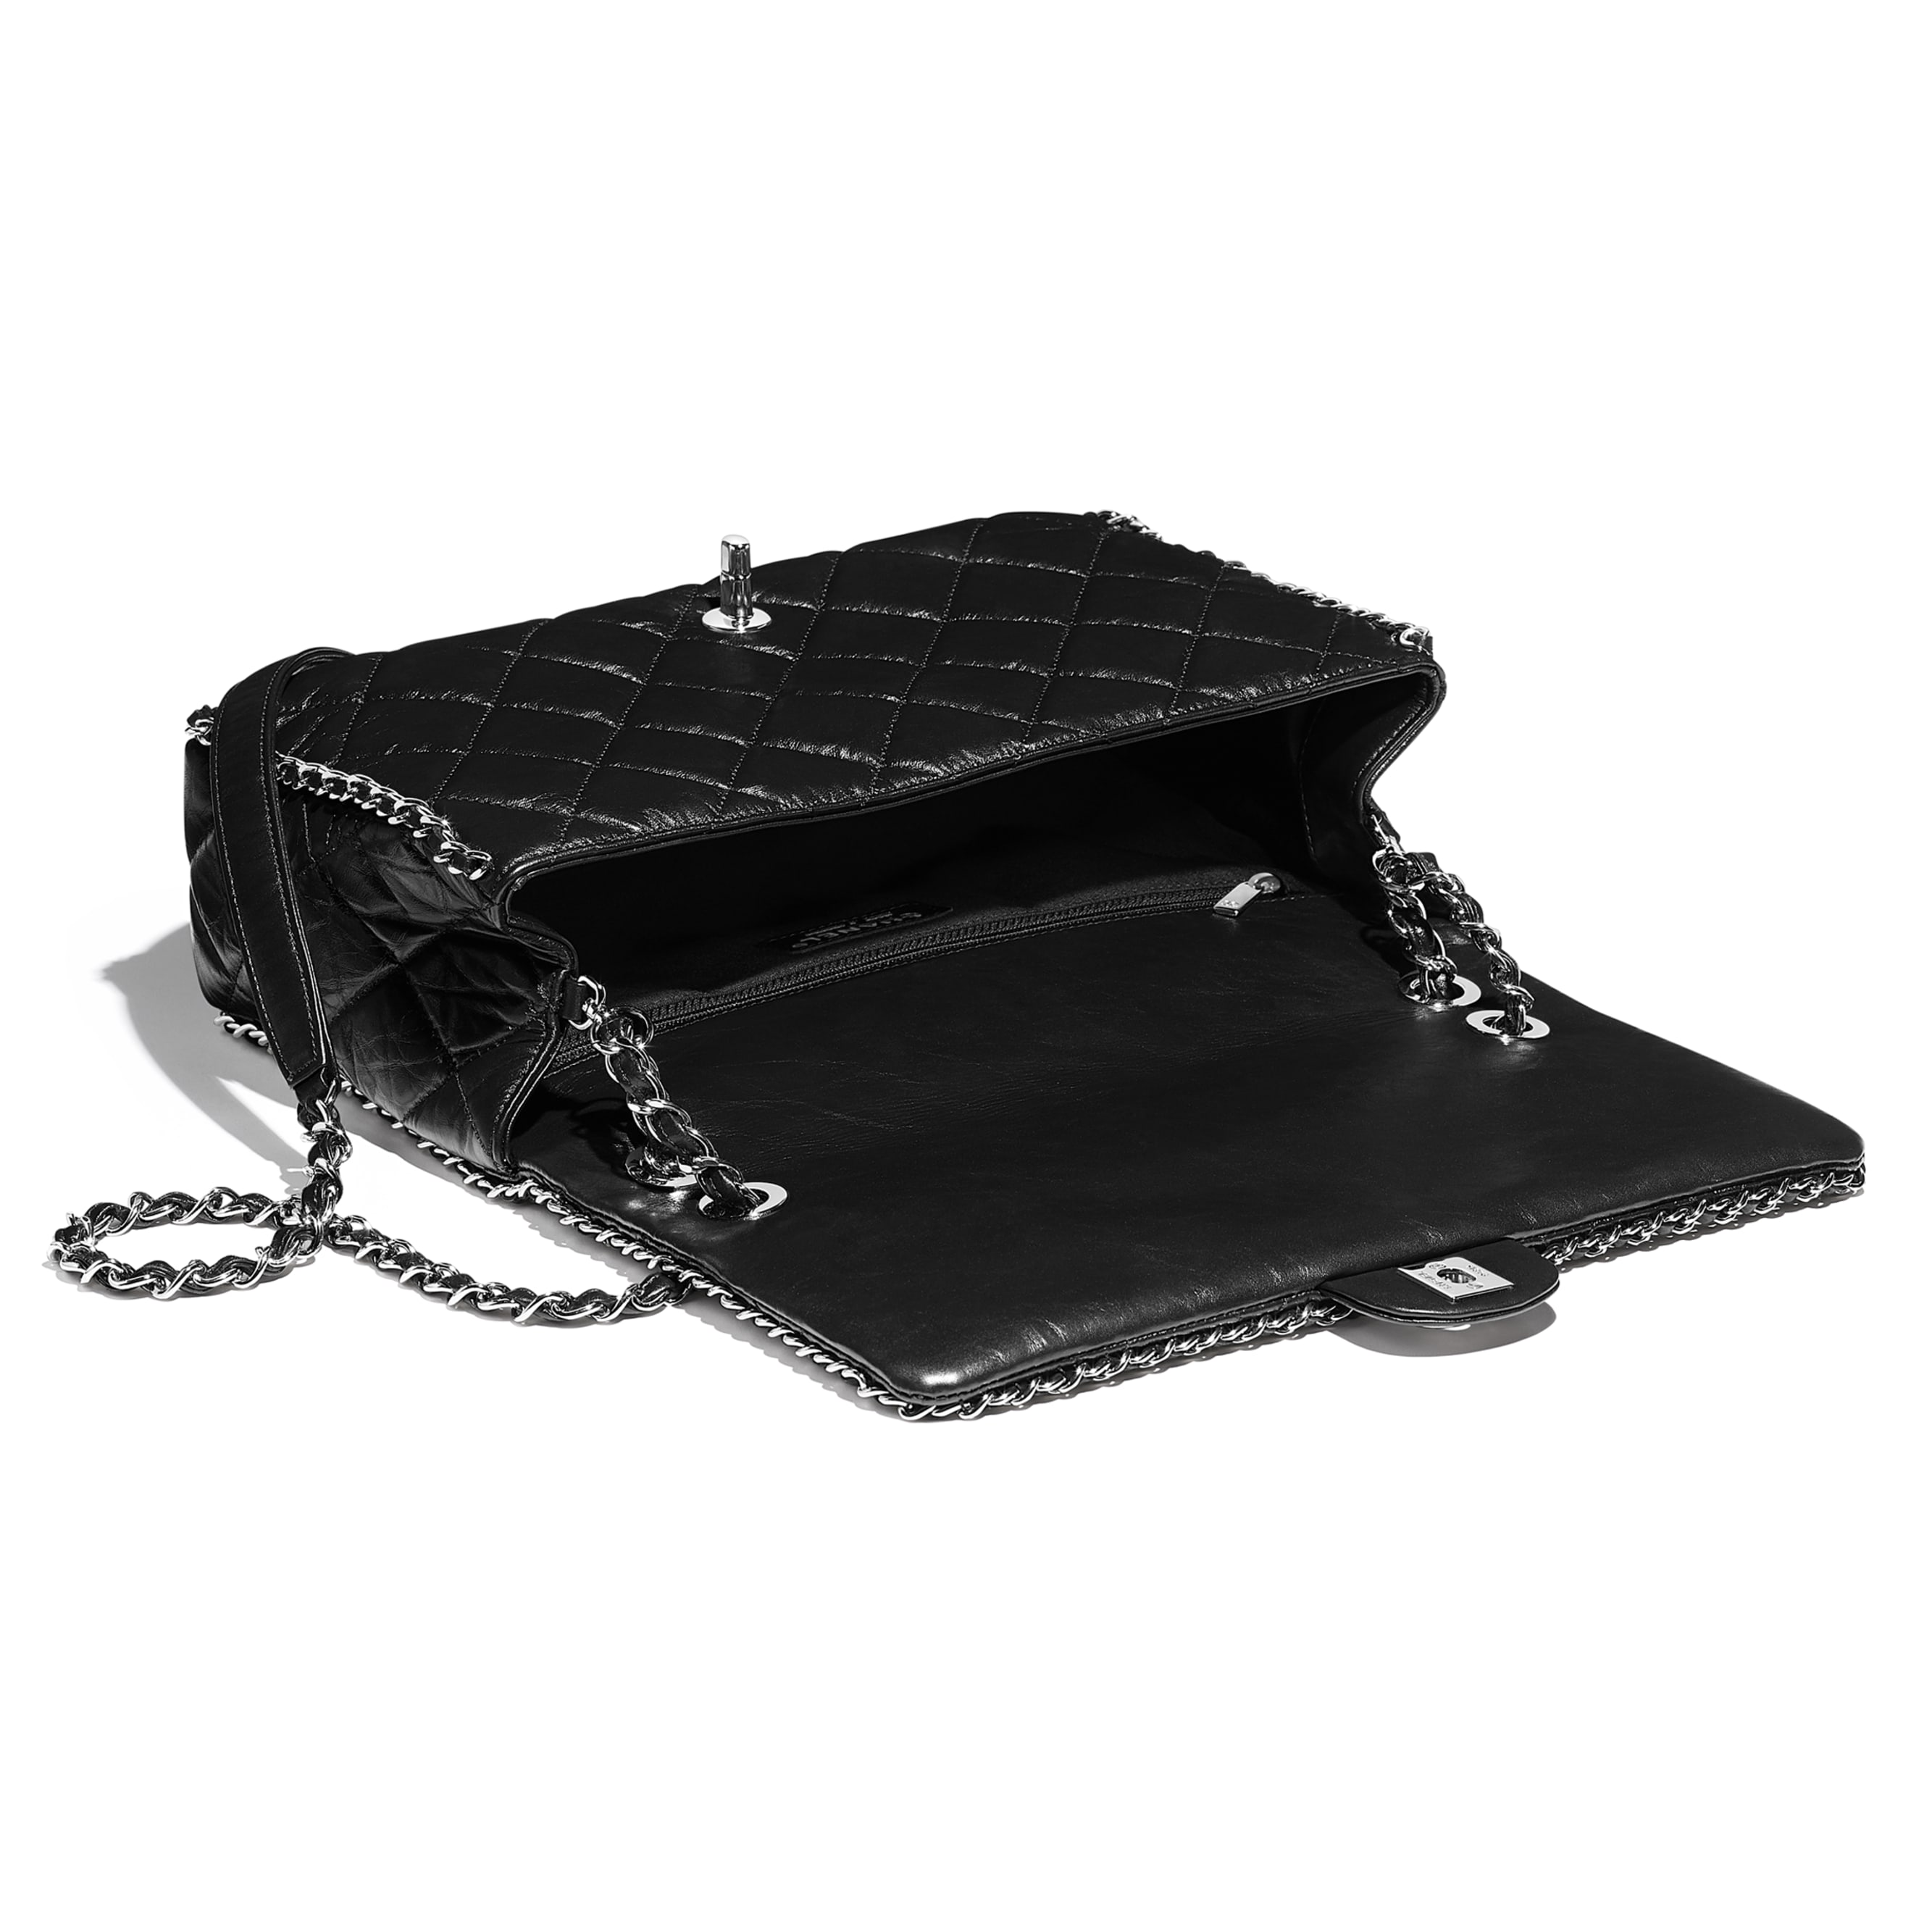 Large Flap Bag - Black - Aged Calfskin & Silver-Tone Metal - CHANEL - Other view - see standard sized version